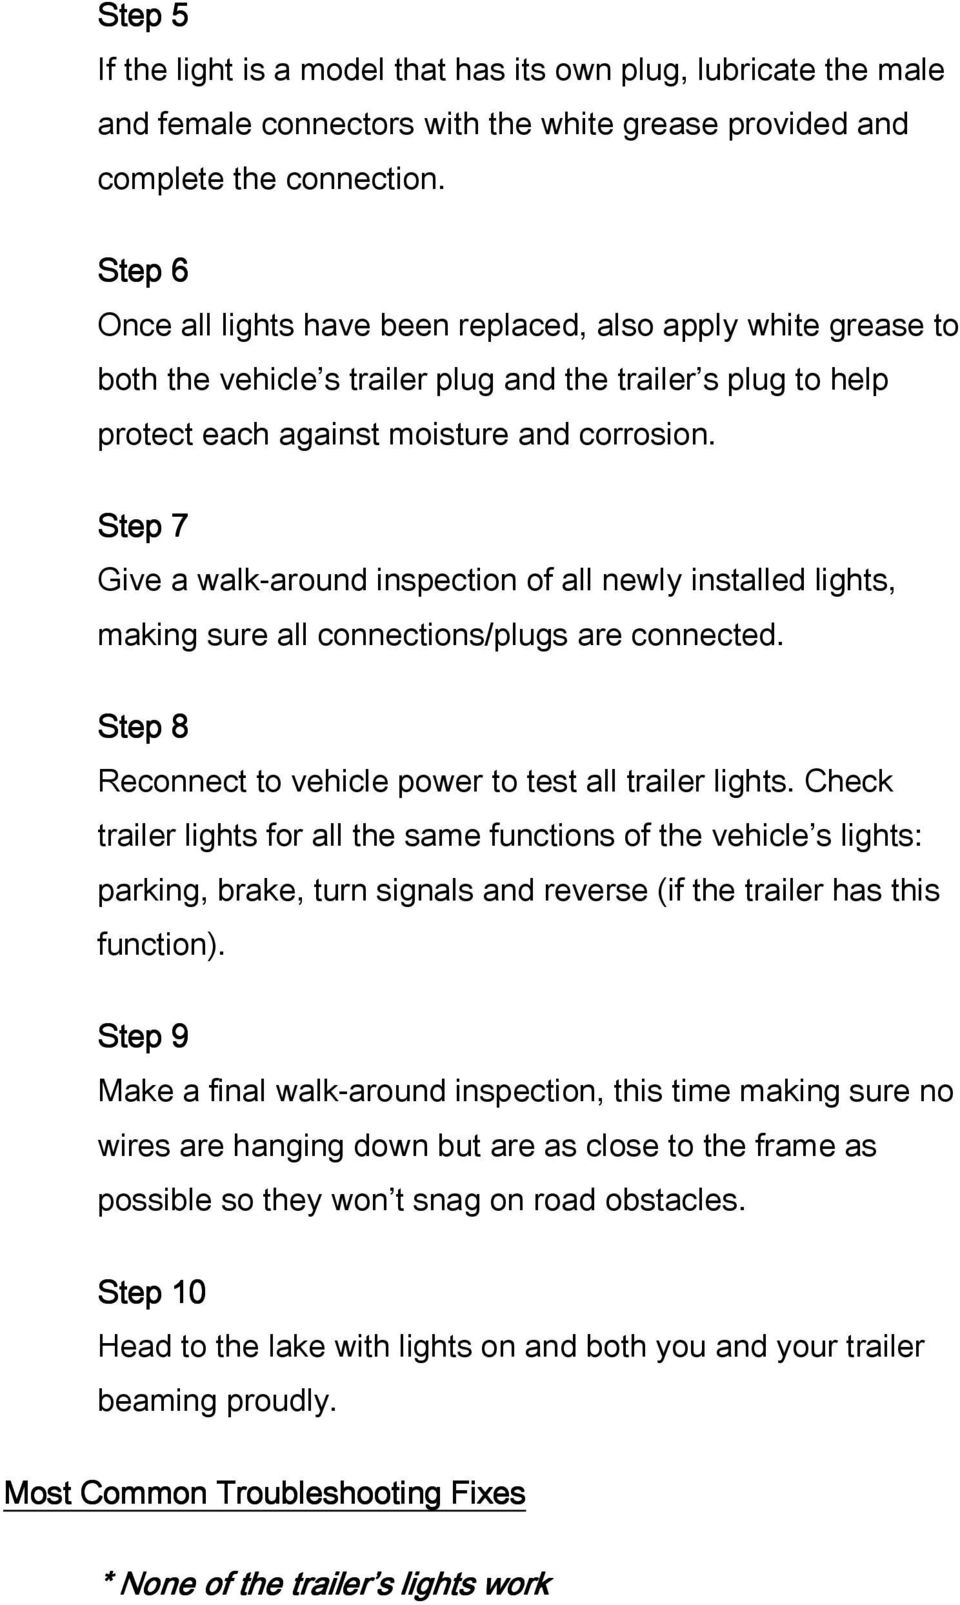 Boat Trailer Lights Replacement For Replacing Existing Male Plug Wiring Step 7 Give A Walk Around Inspection Of All Newly Installed Making Sure